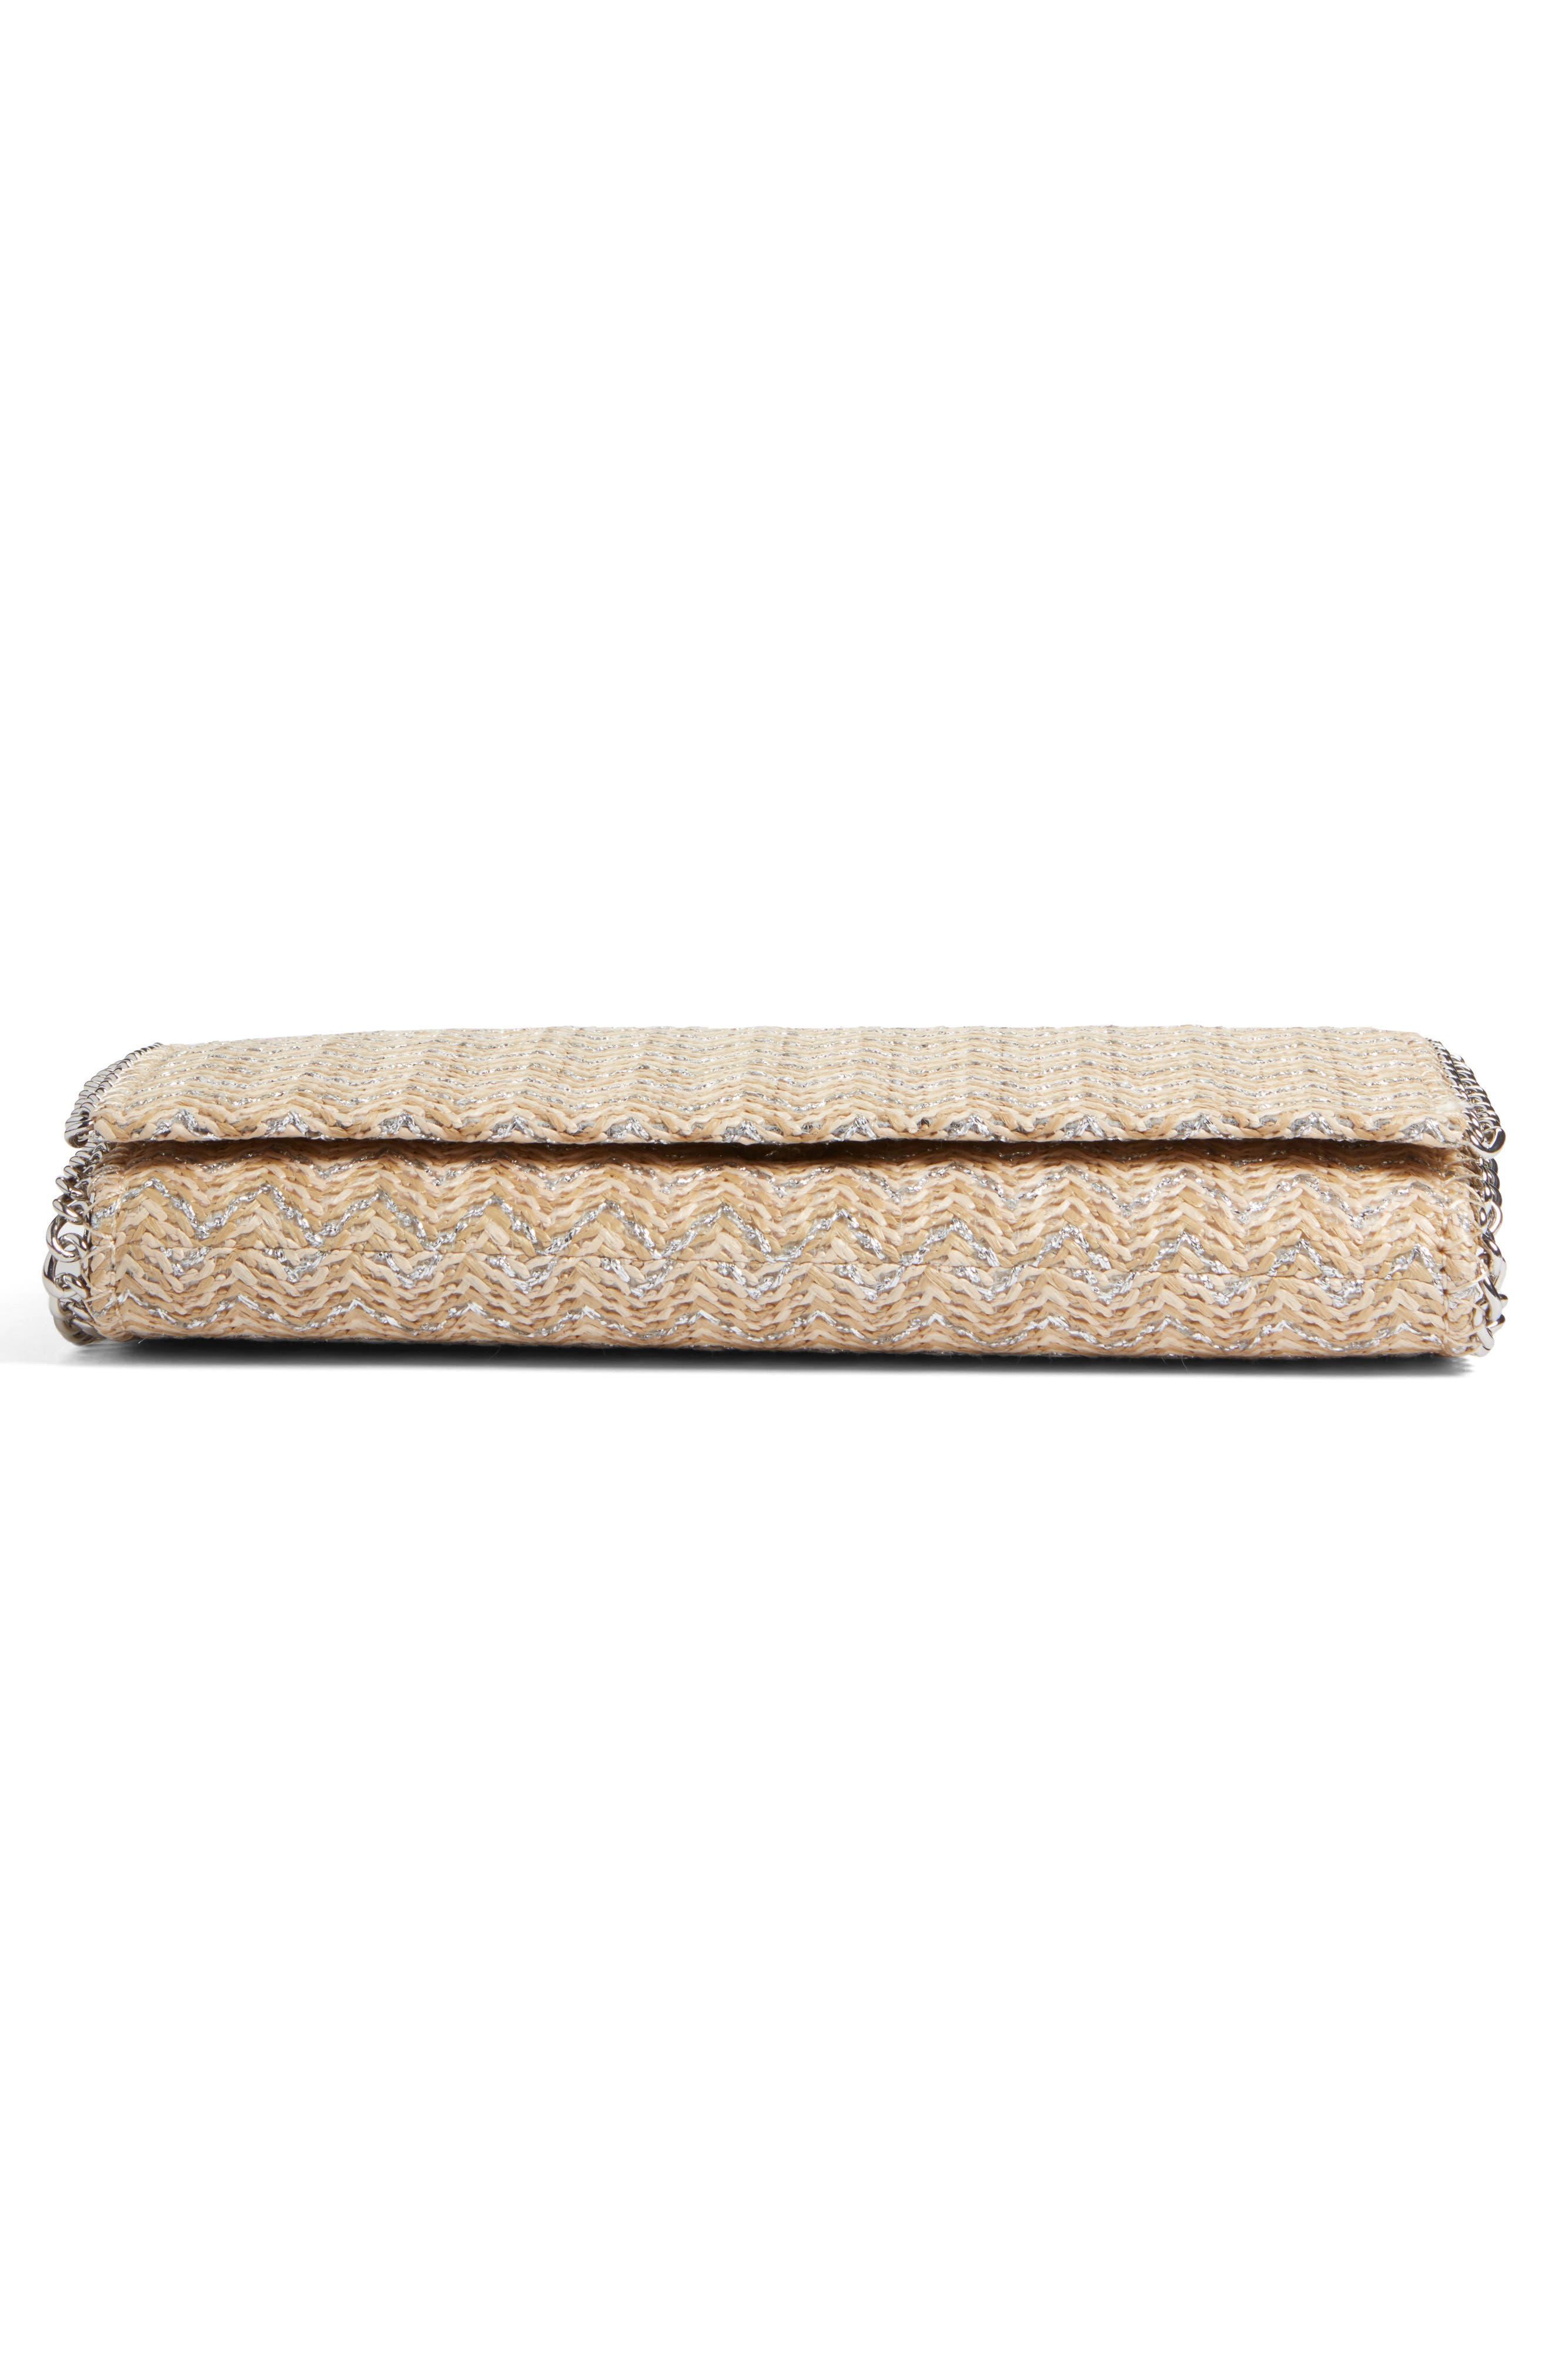 Stripe Straw Convertible Clutch,                             Alternate thumbnail 6, color,                             040